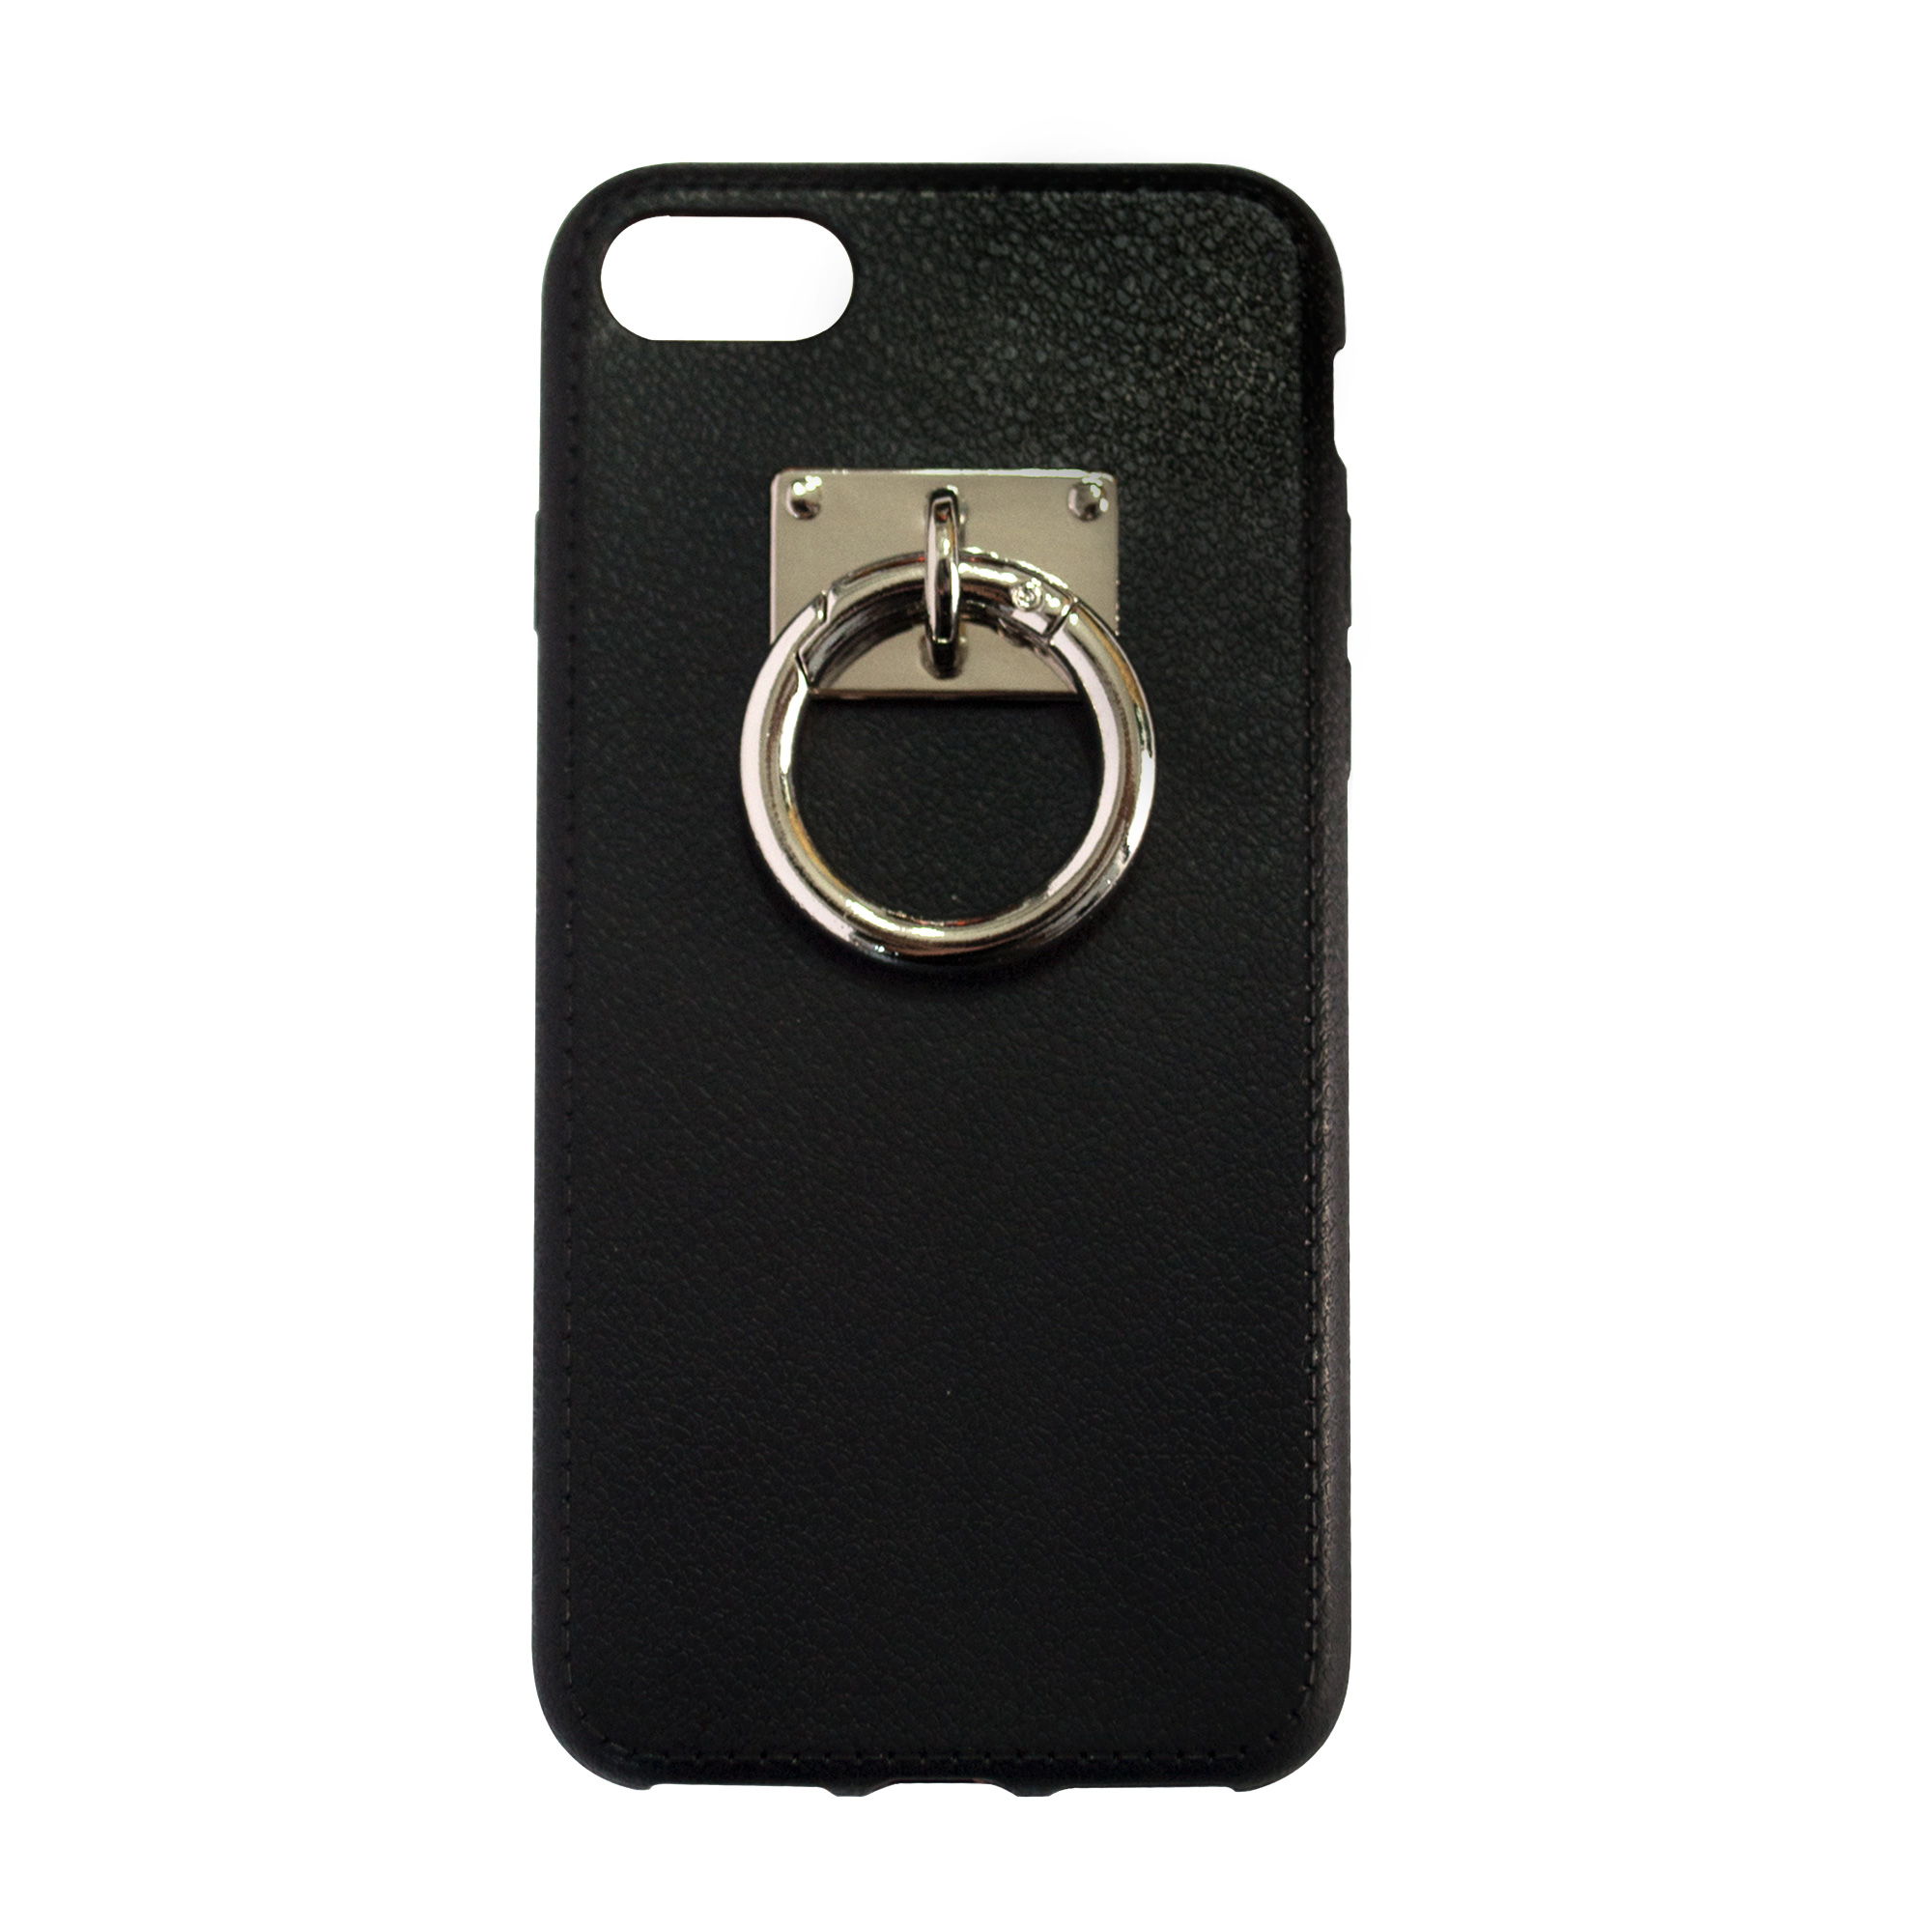 Manacle XL Case with Silver Hardware - Black Soft Case